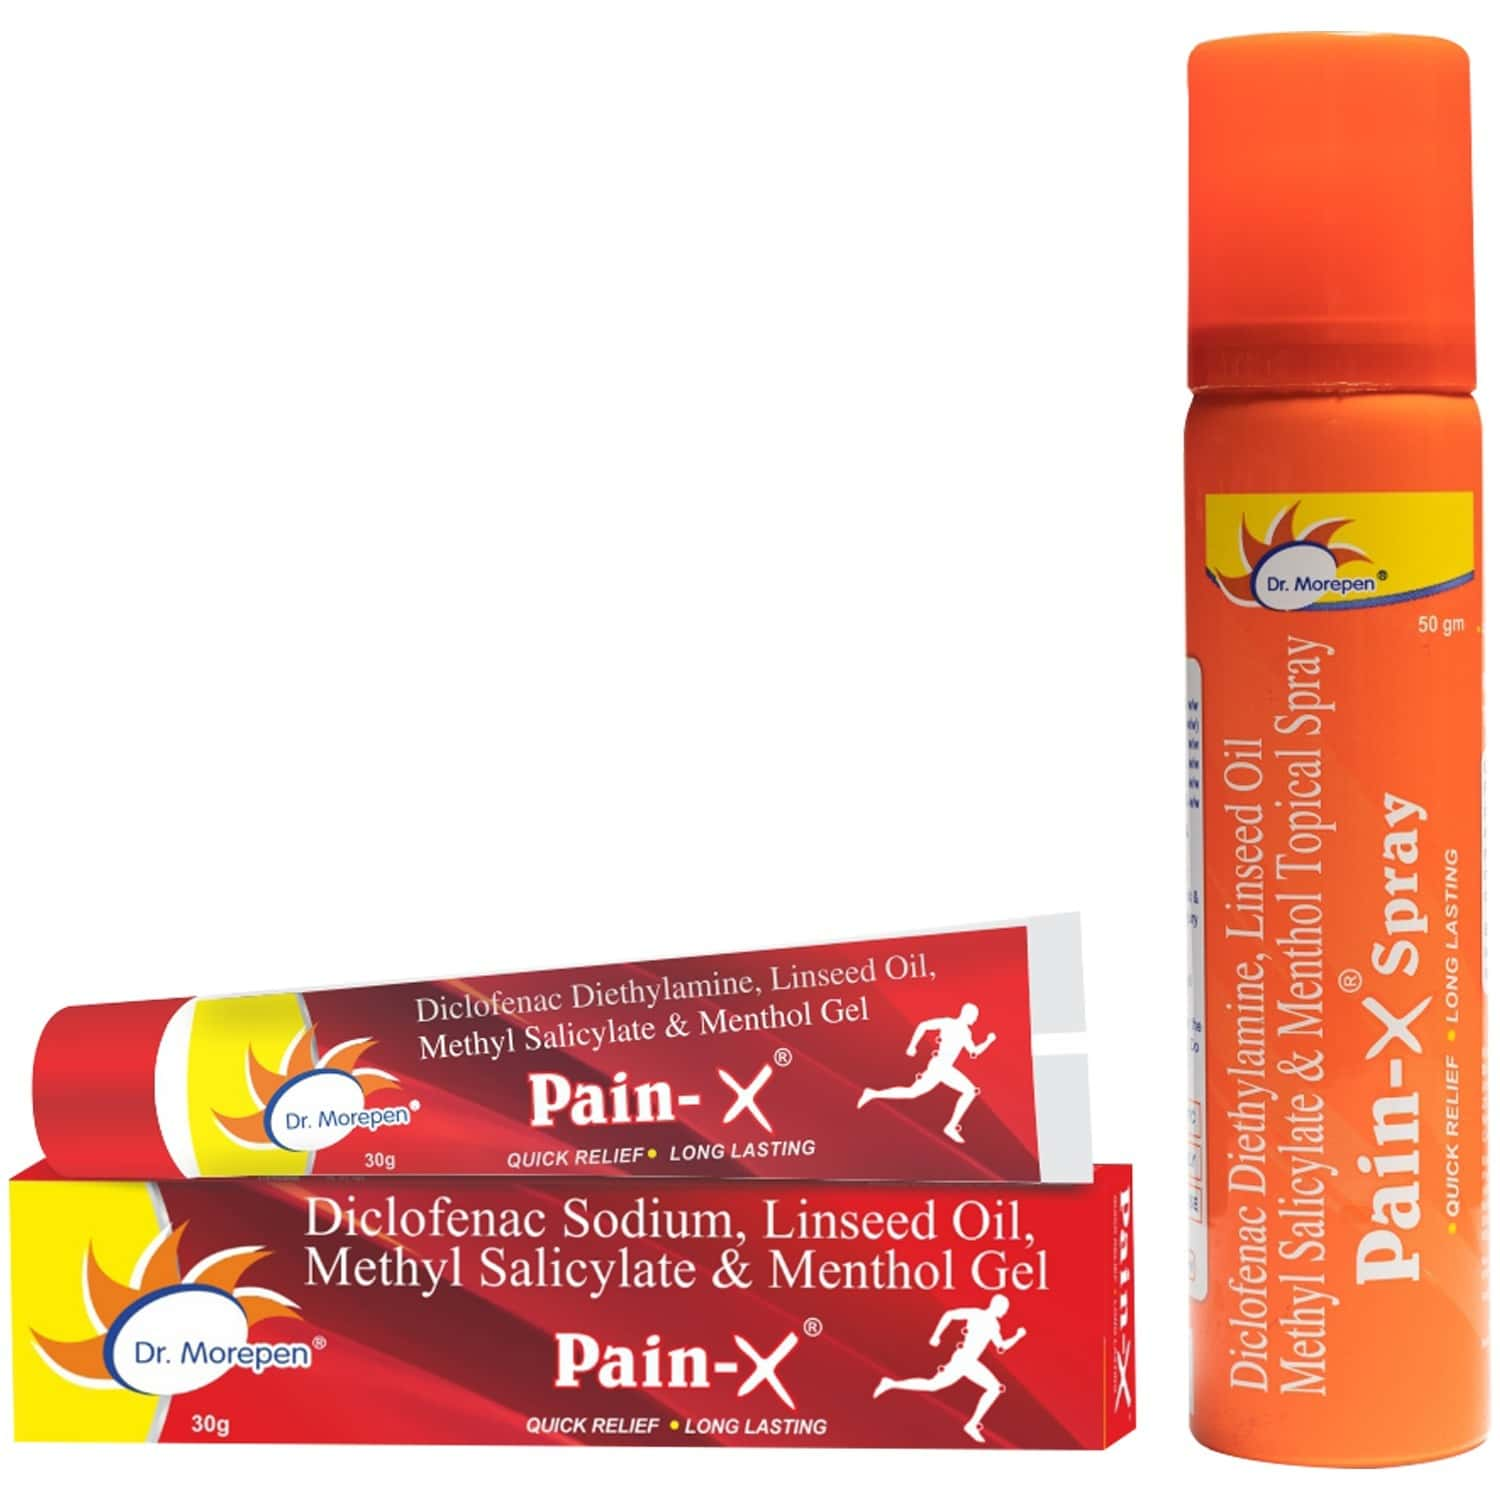 Dr. Morepen Body Pain Relief Combo - Pain-x Spray 50g & Pain-x Gel 30g